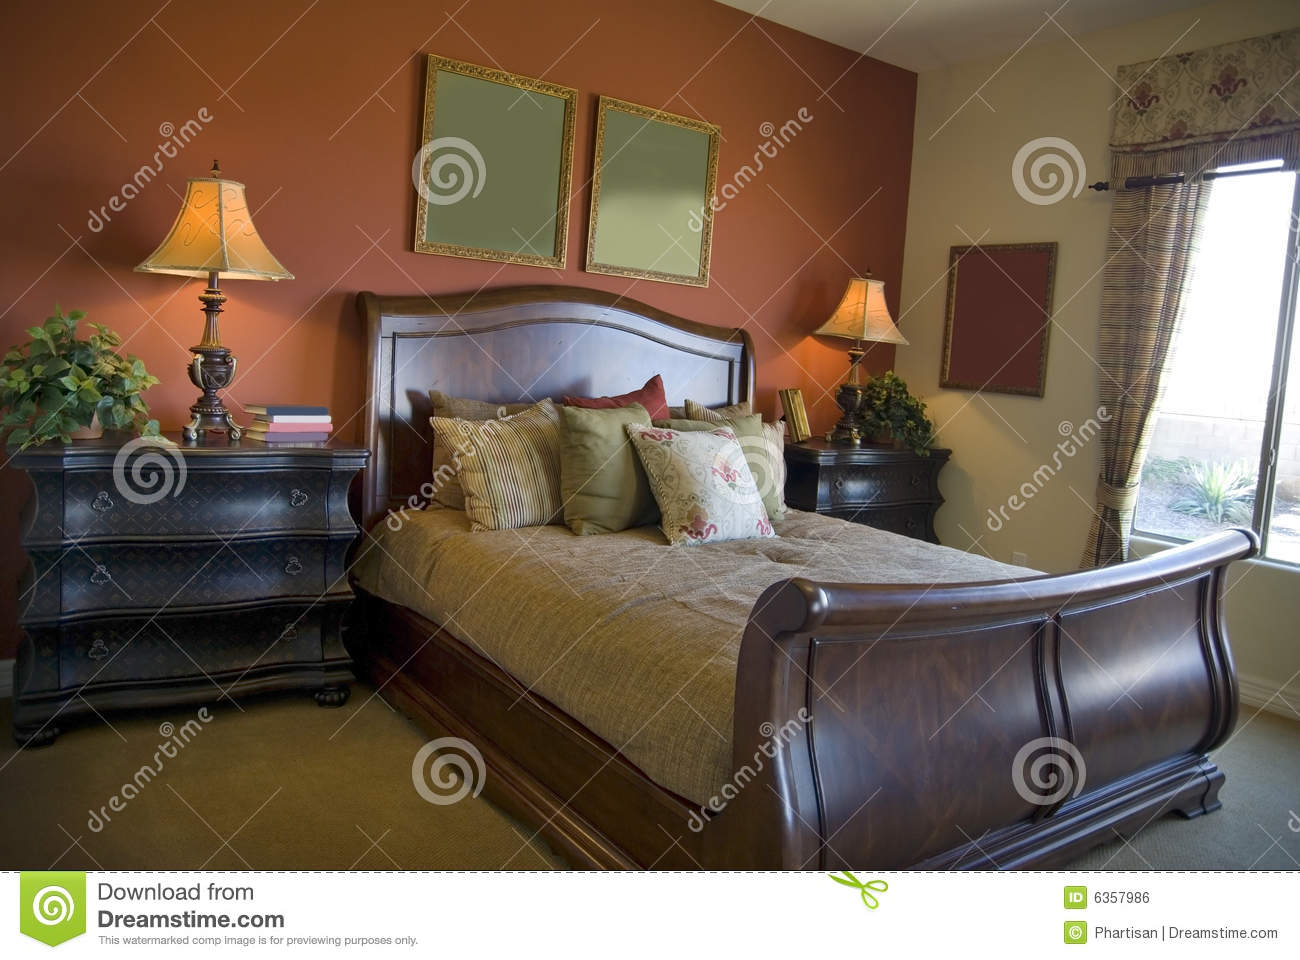 Beautiful bedroom interior design royalty free stock image for Beautiful rooms interior design